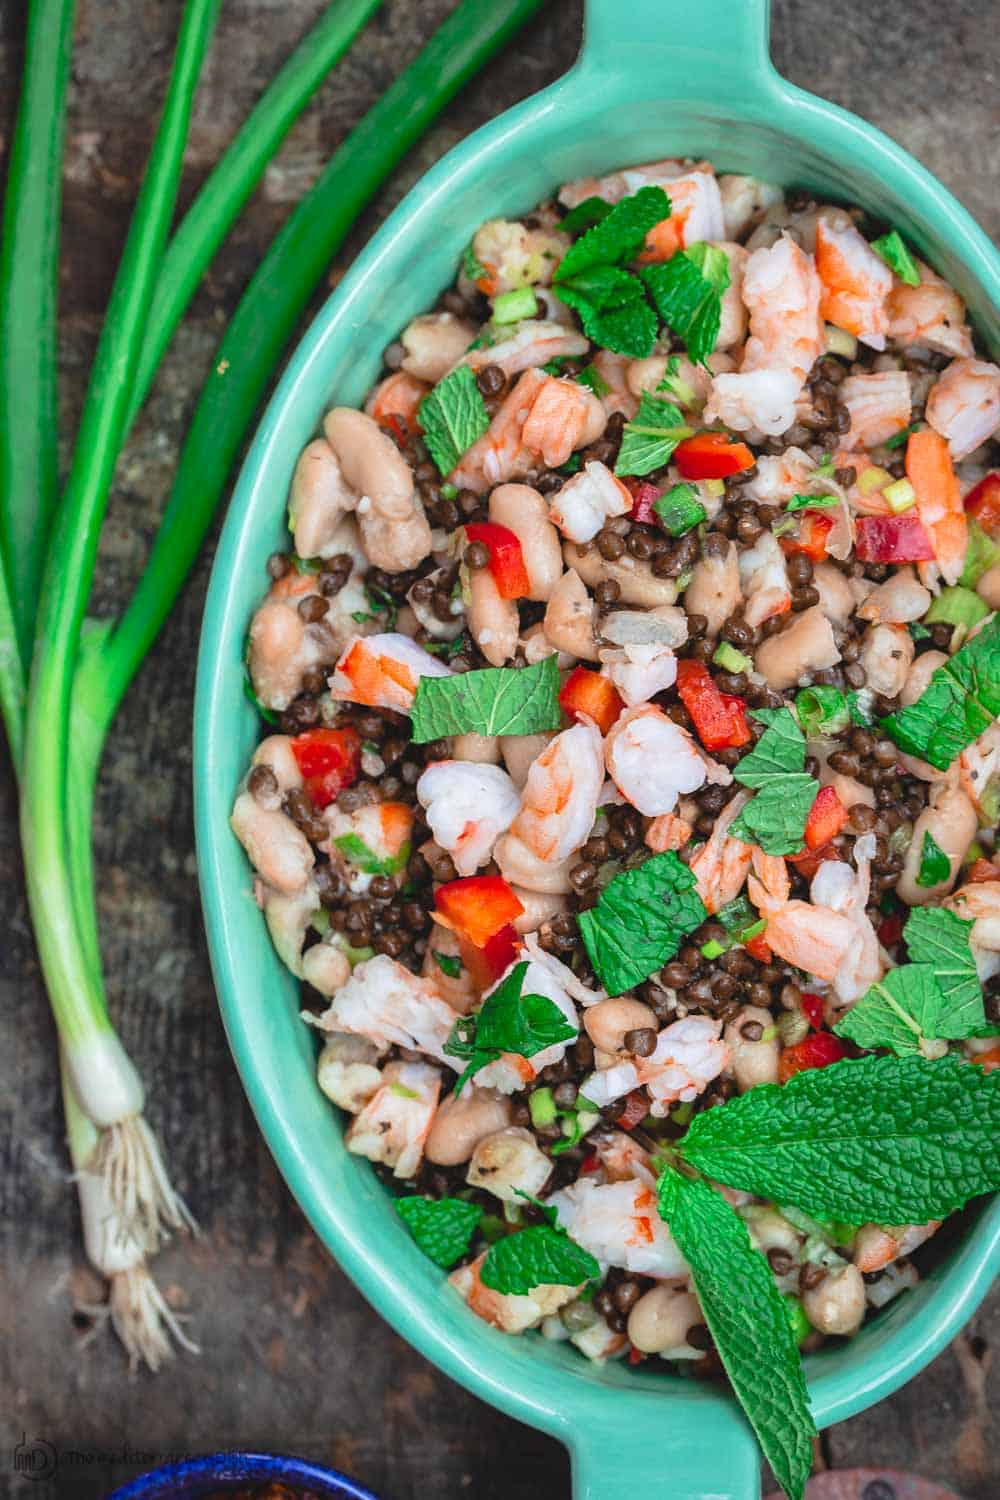 Tuscan White Bean Salad with shrimp, lentils, crunchy vegetables and fresh herbs. A garnish of scallions and fresh mint